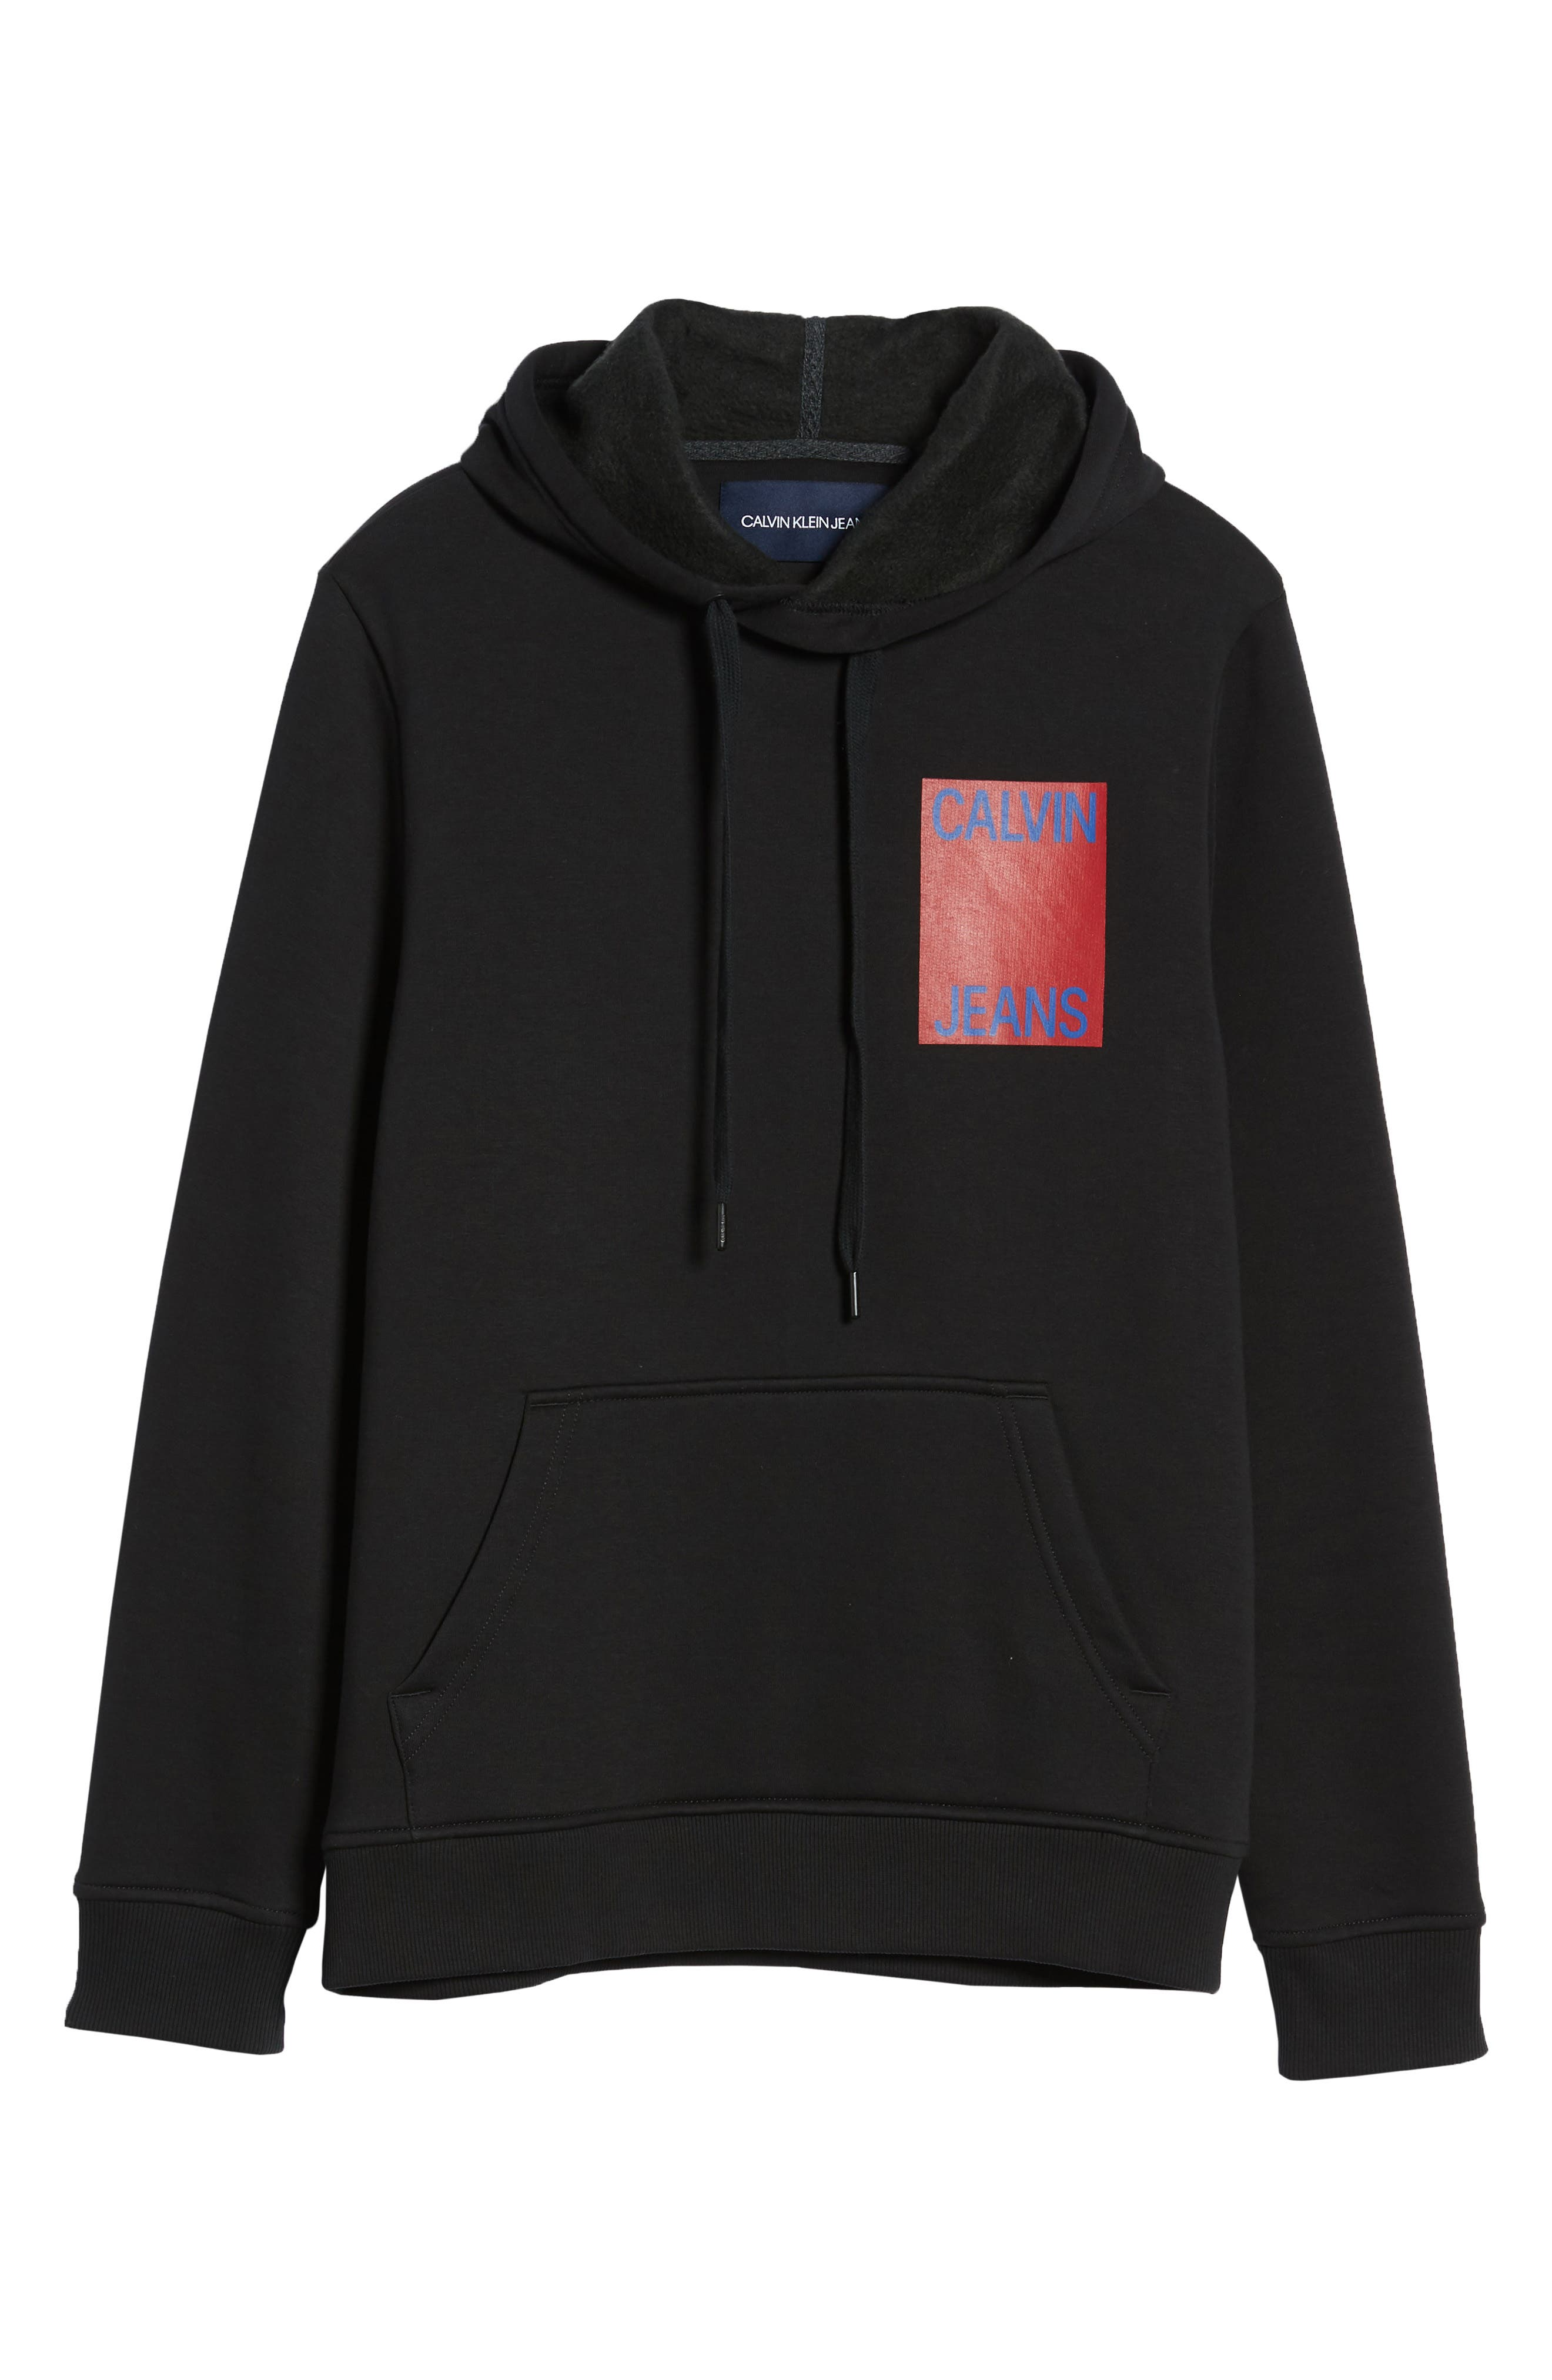 CALVIN KLEIN JEANS,                             Stacked Logo Hoodie,                             Alternate thumbnail 6, color,                             010